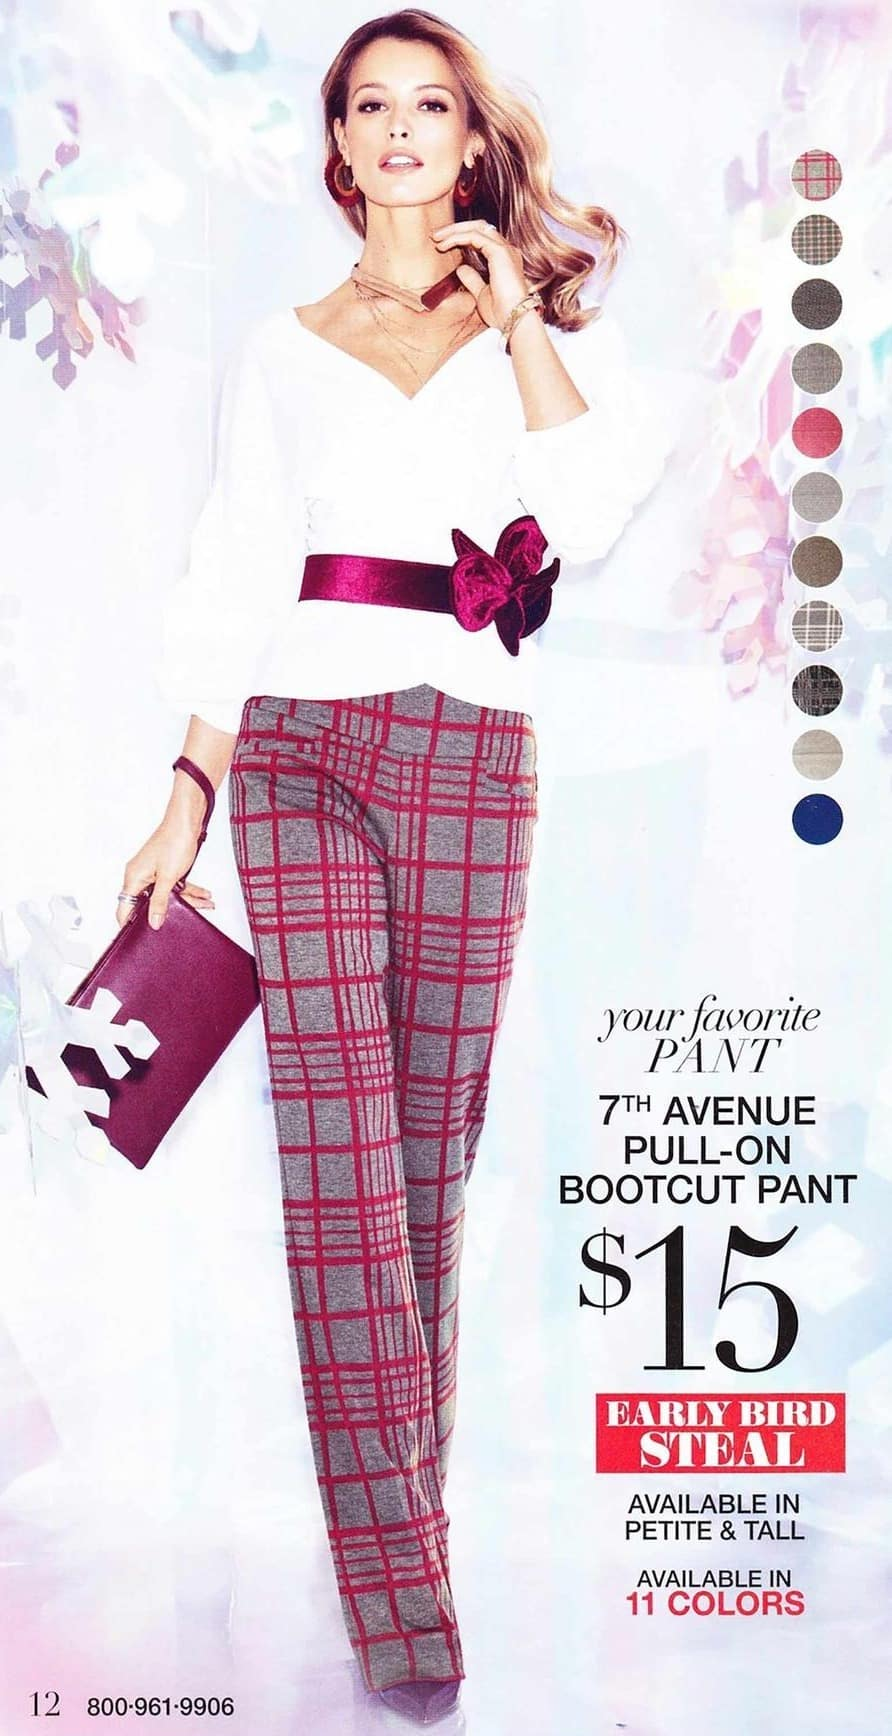 New York and Company Black Friday: Women's 7th Avenue Pull-On Bootcut Pant for $15.00